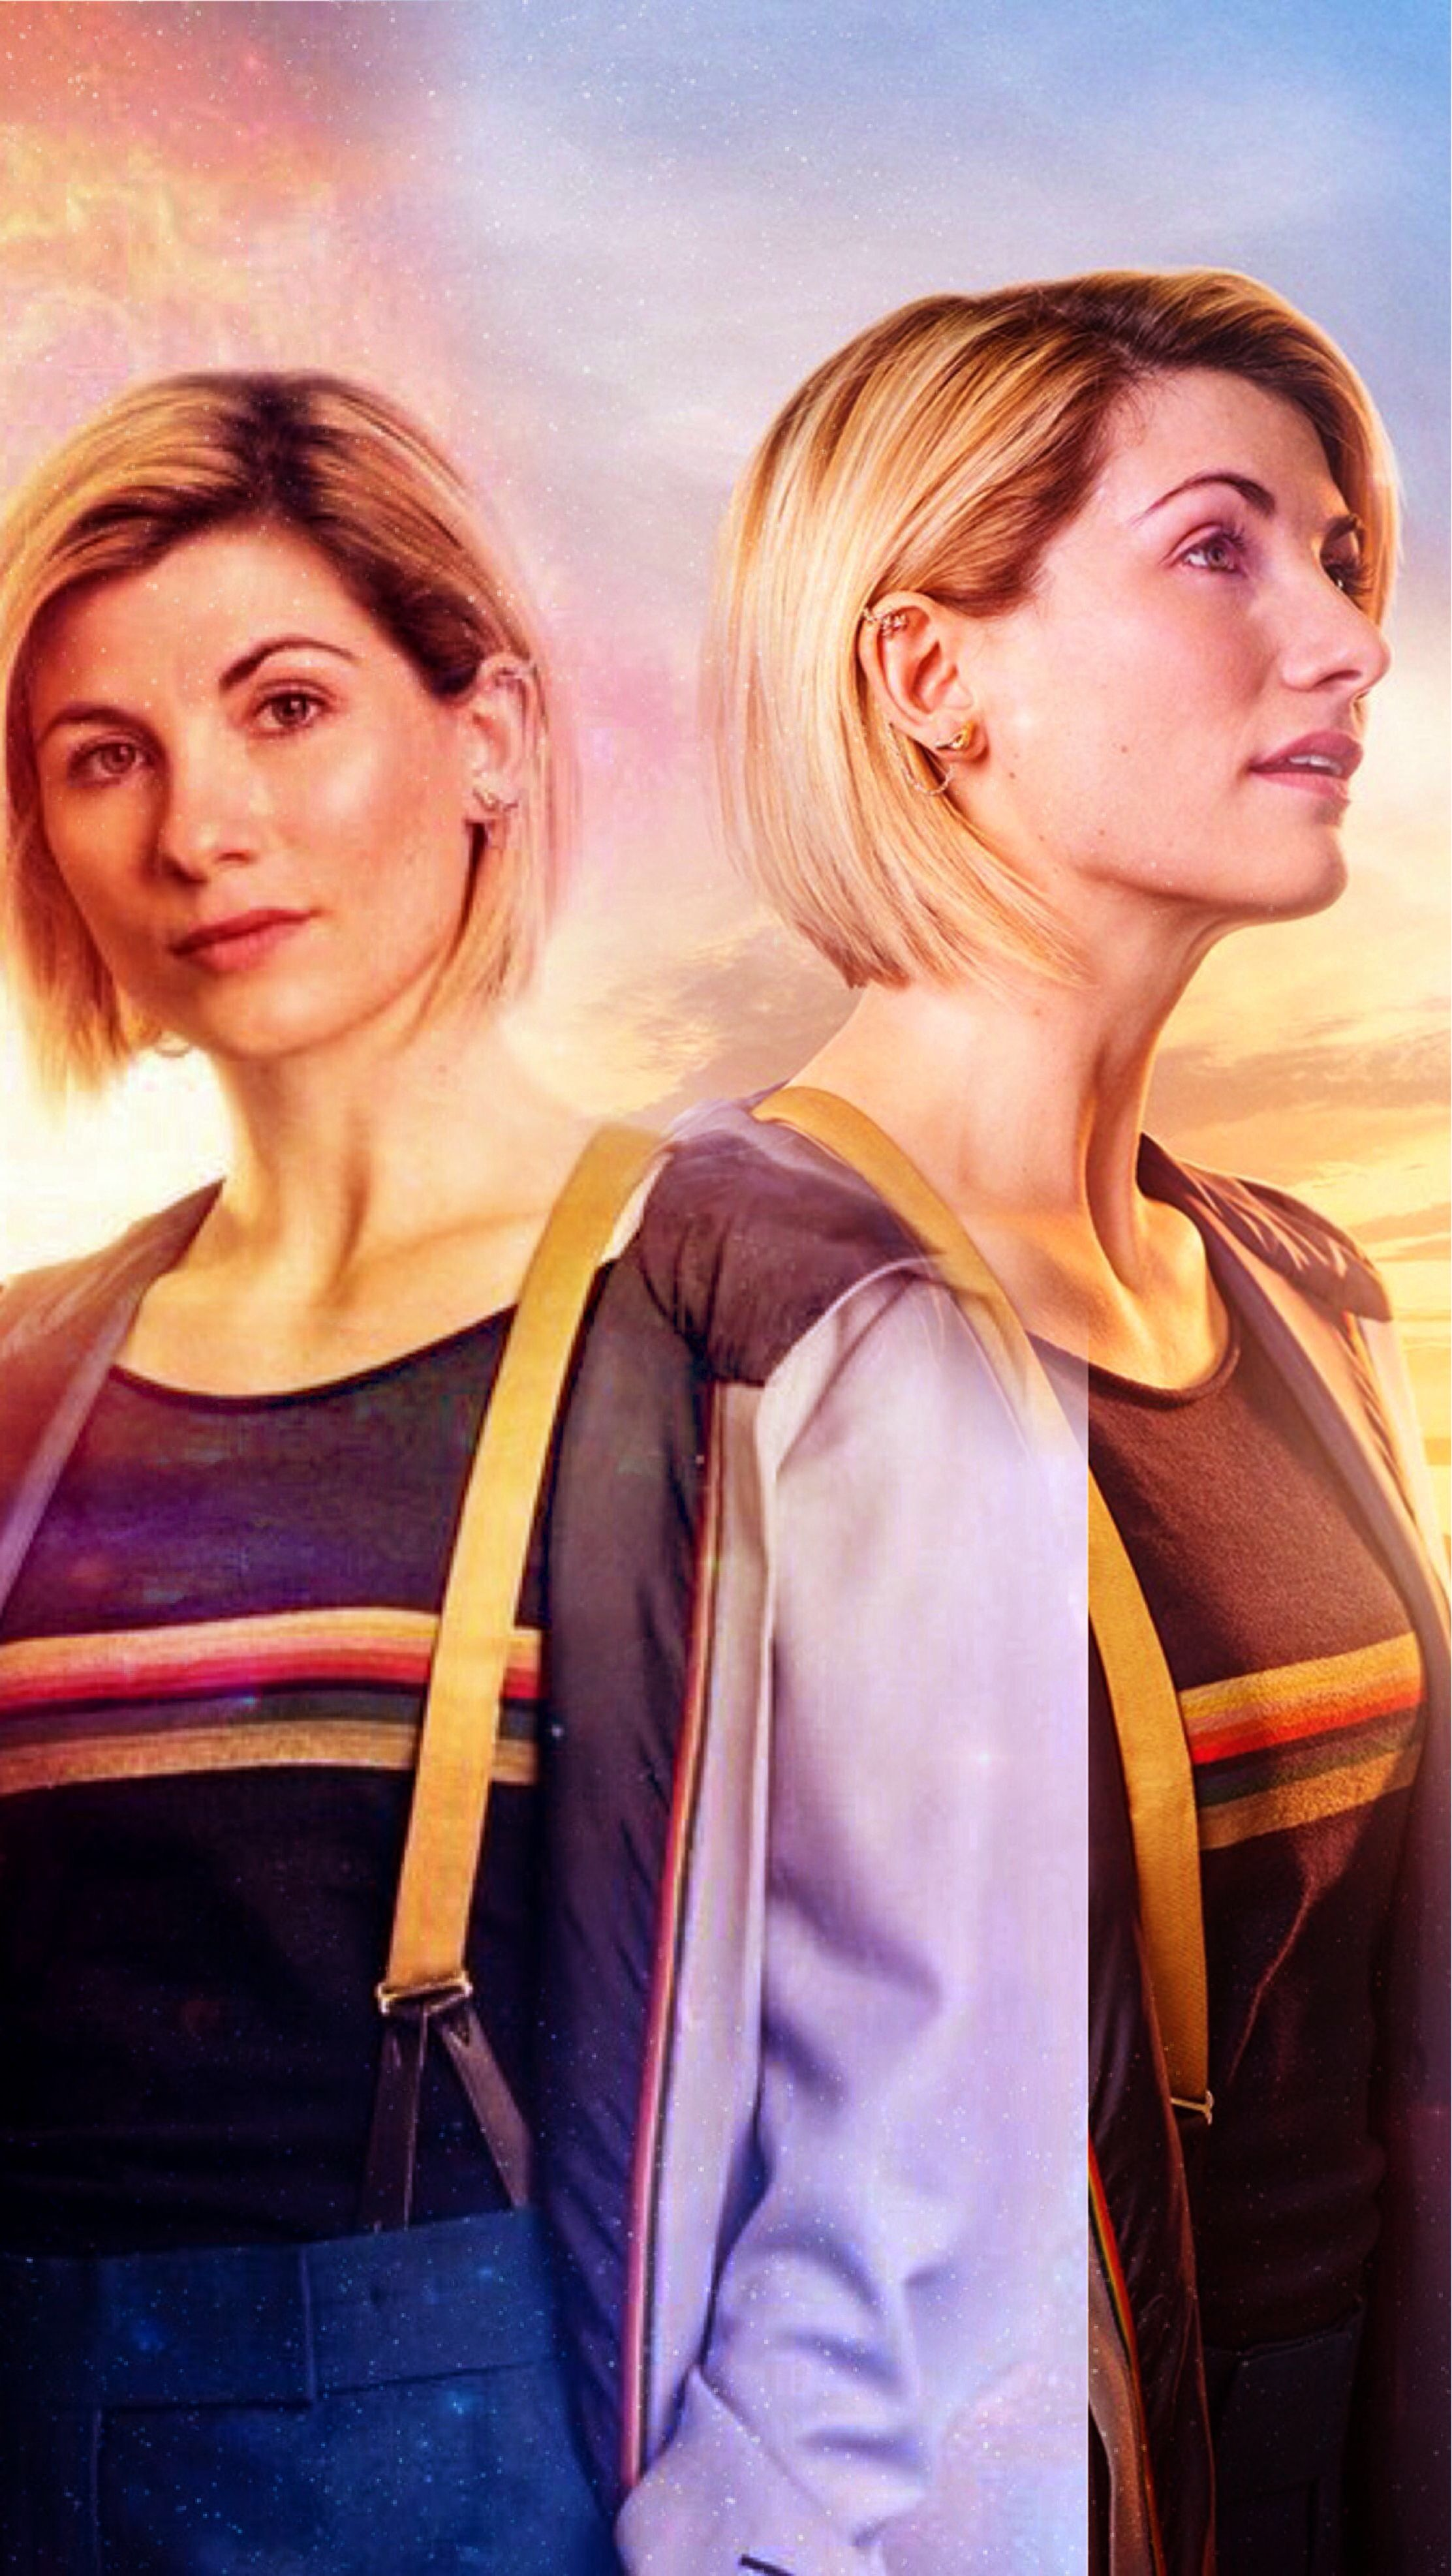 13th Doctor Sunset Iphone Wallpaper Doctor Who Doctor Who Wallpaper